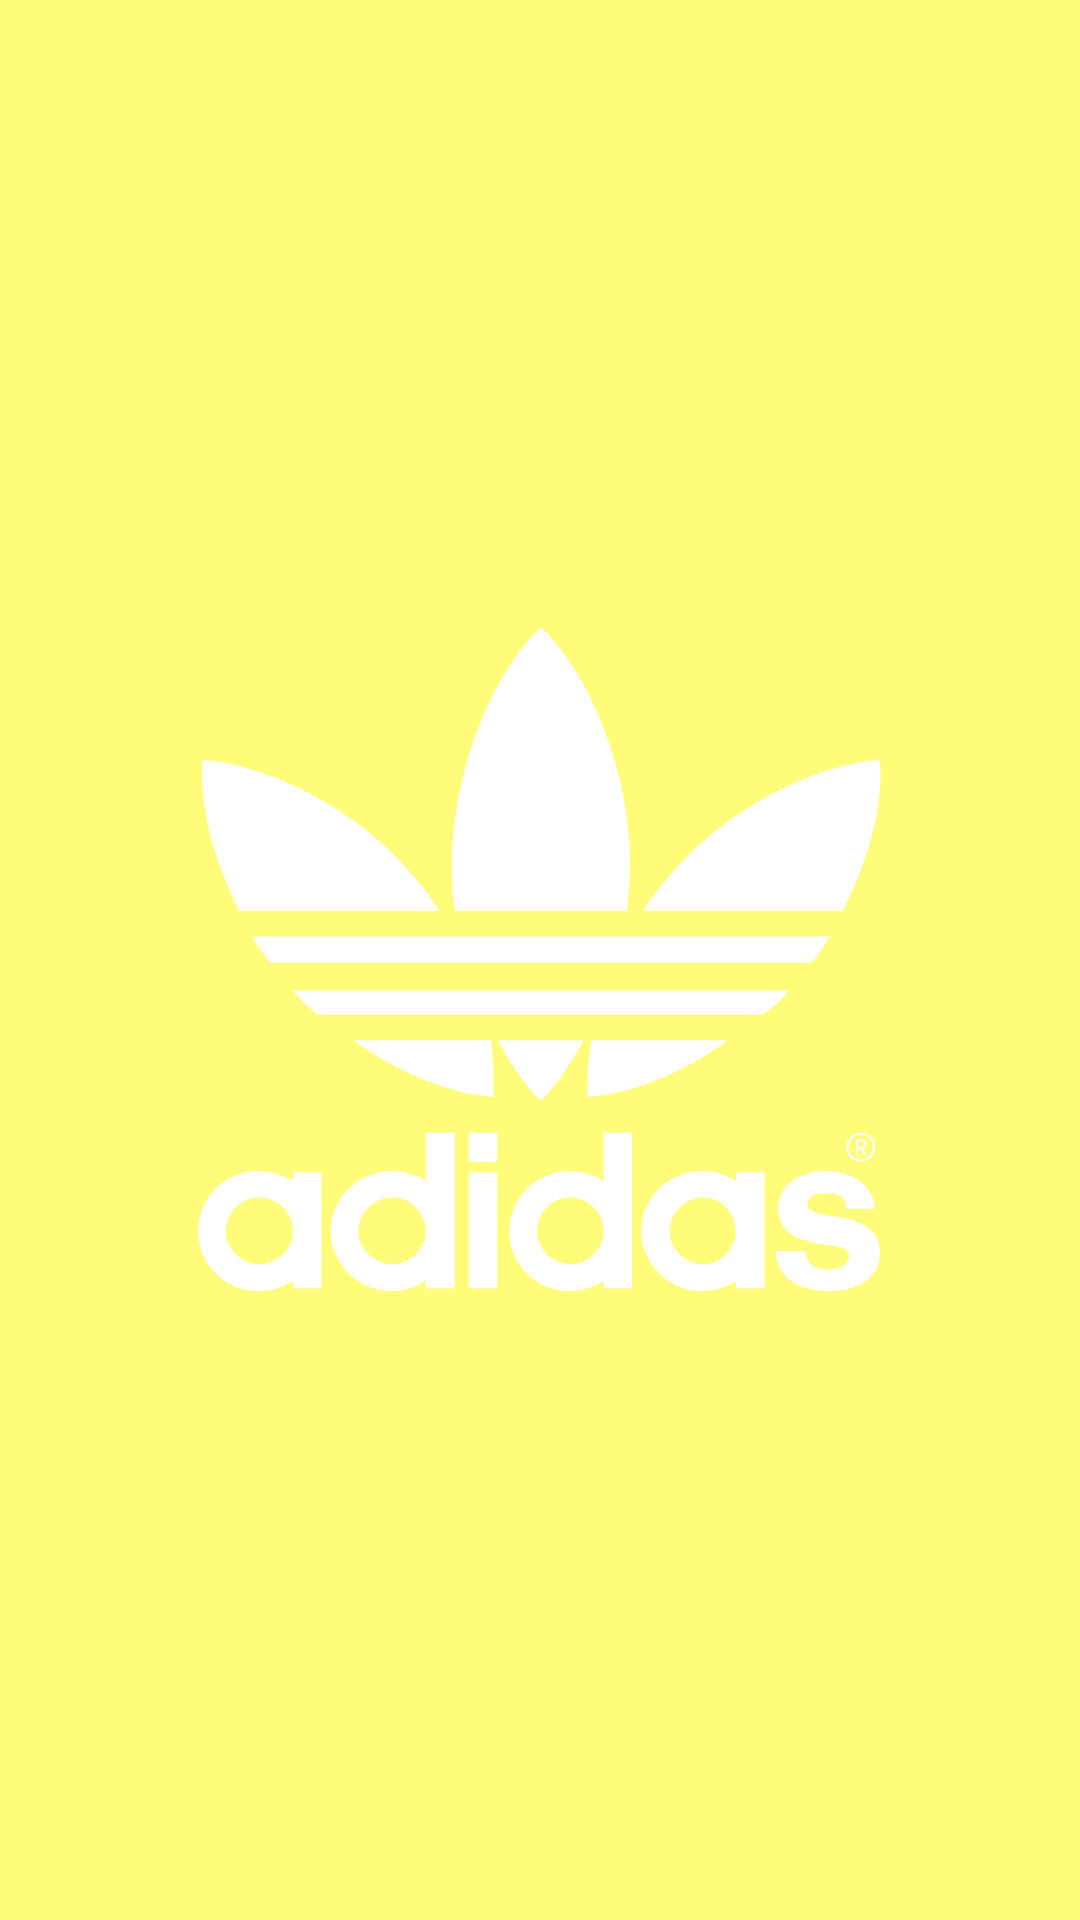 adidas14 - 25 adidas HQ Smartphone Wallpaper Collection